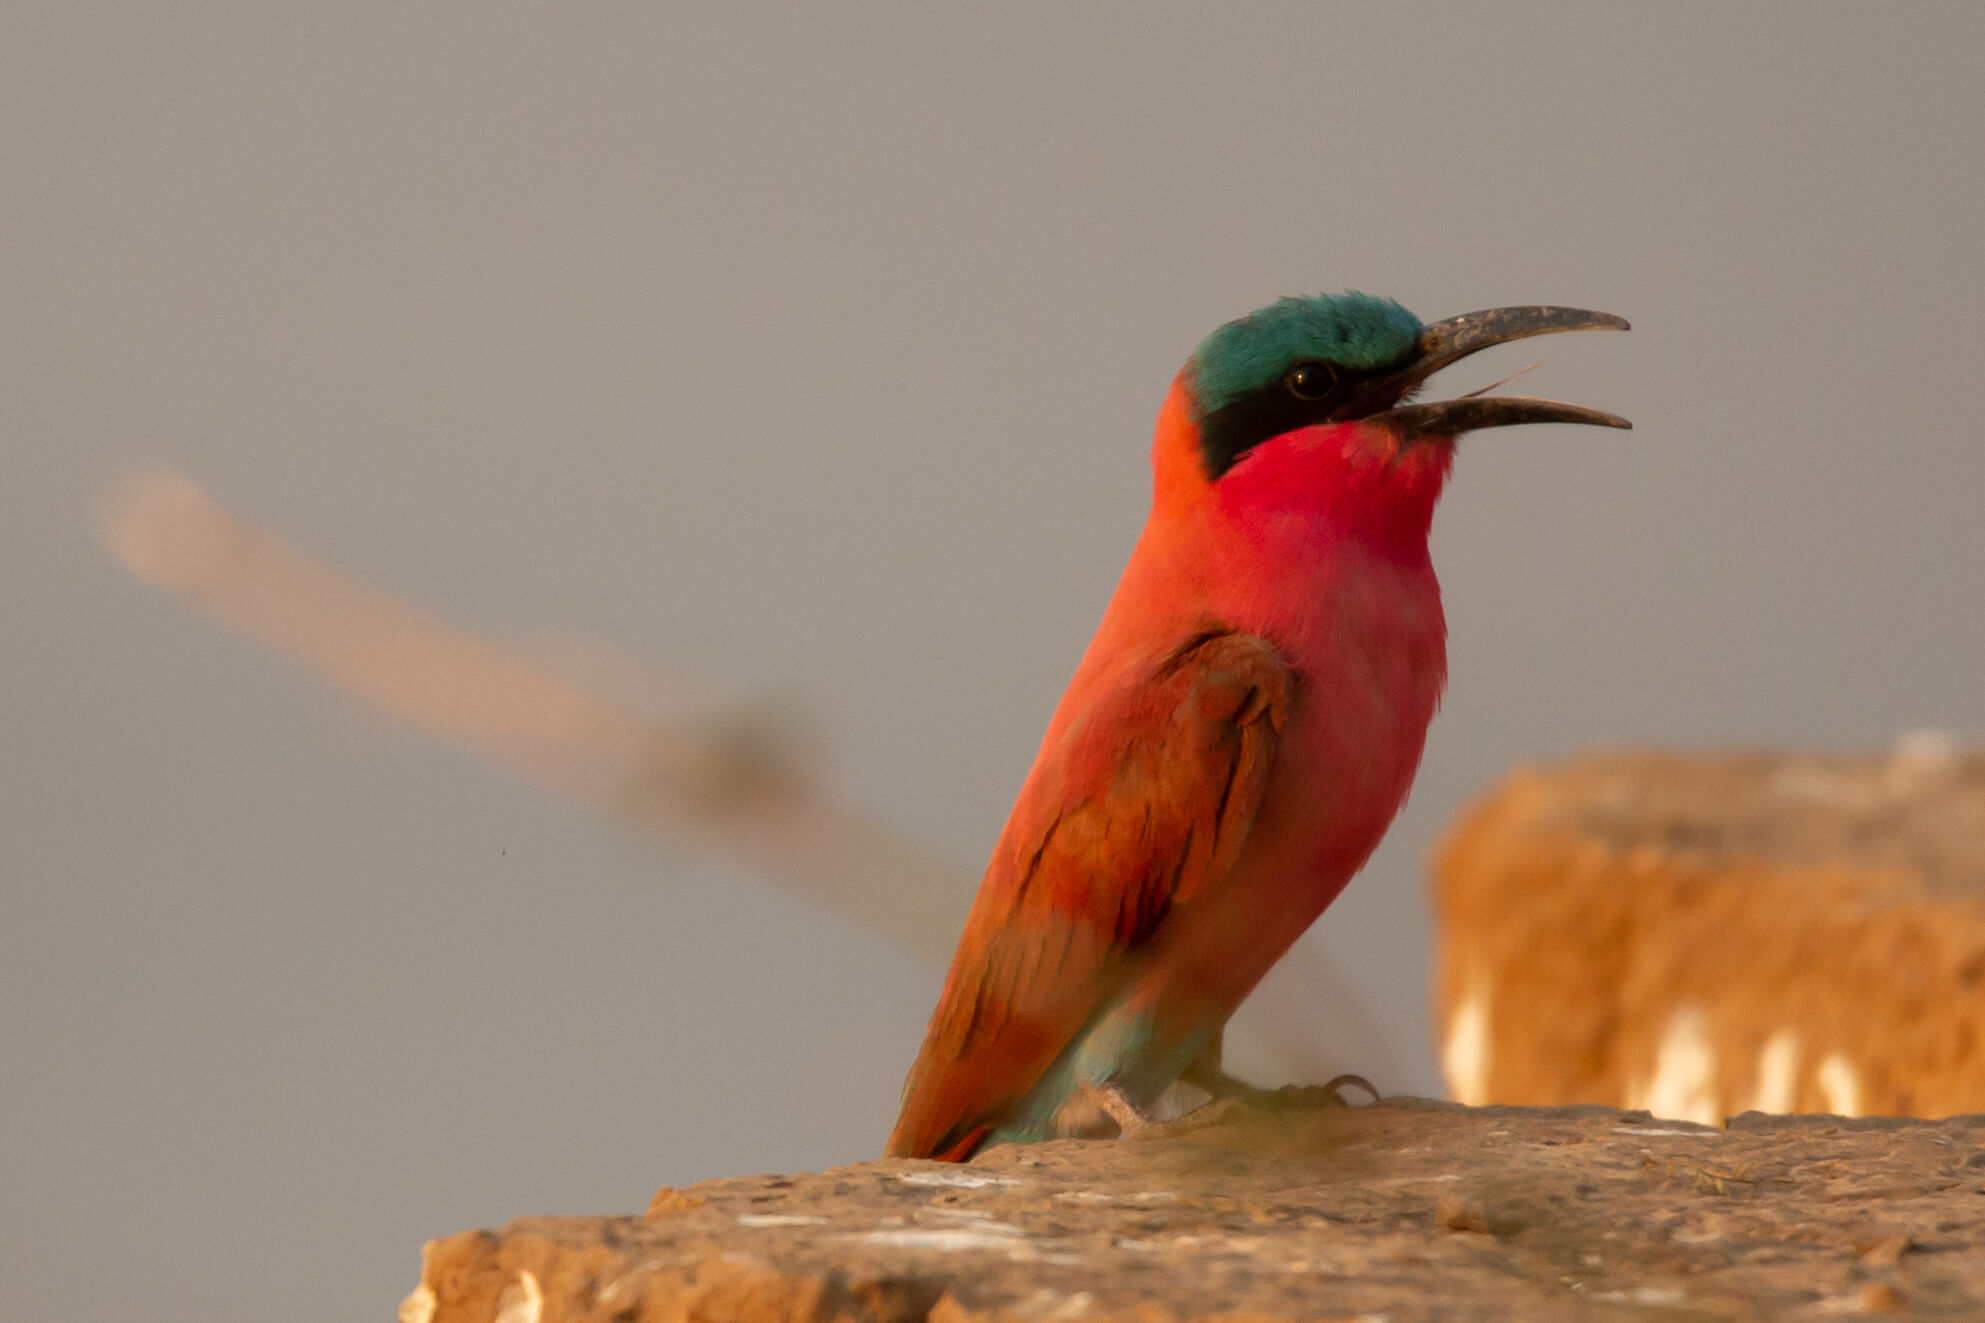 Carmine bee-eater in South Luangwa National Park Zambia